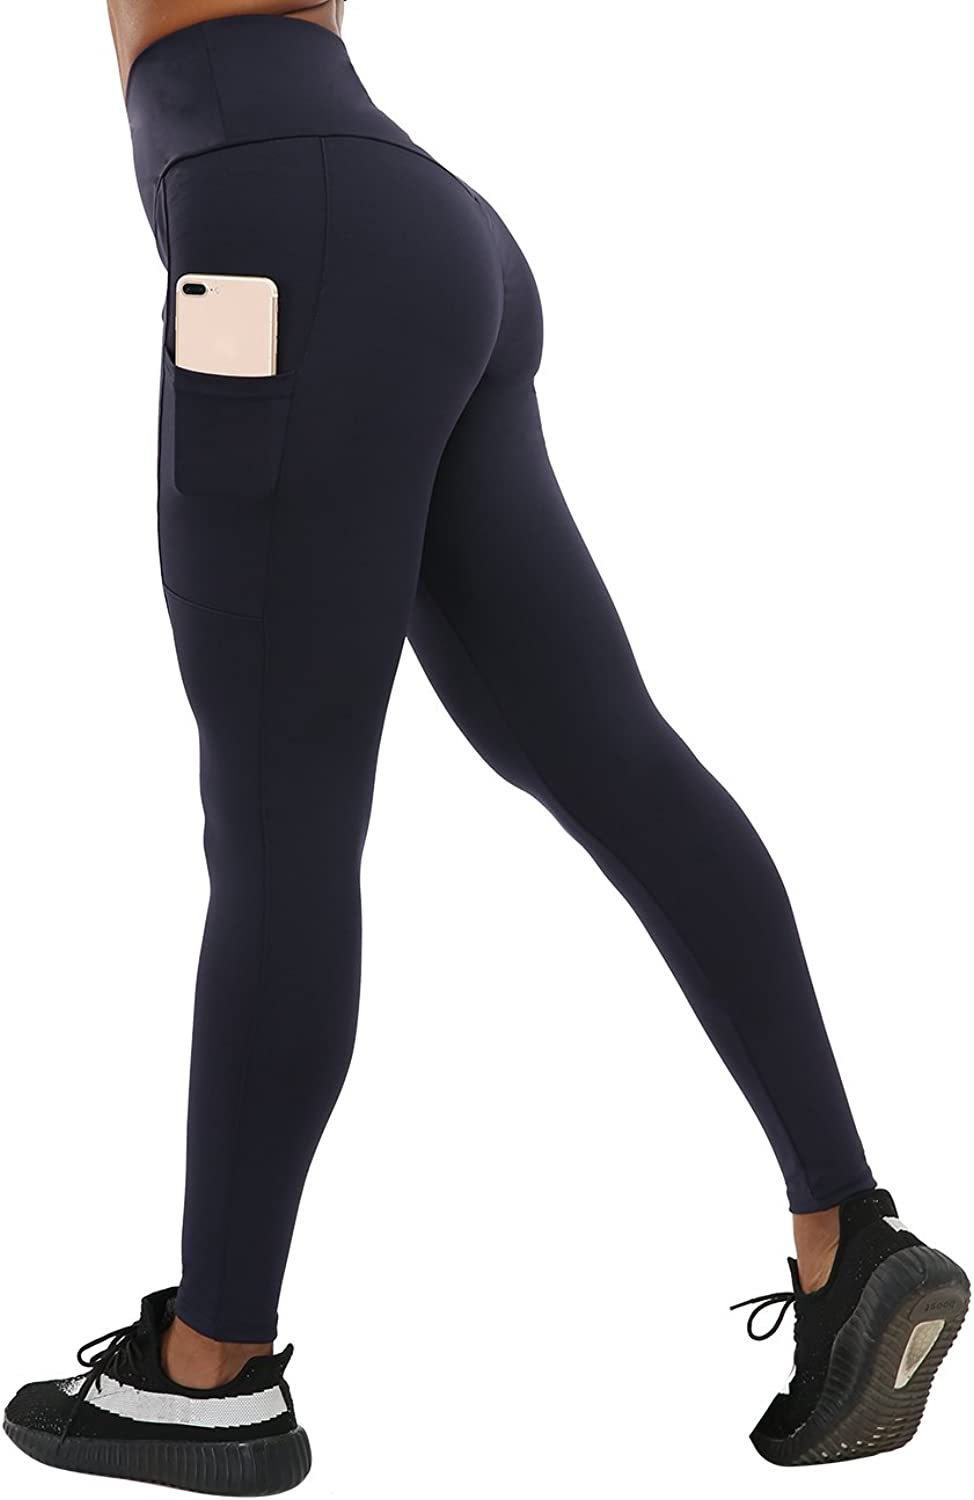 CHRLEISURE Yoga Pants for Women  High Waisted Leggings with 2 Pockets, Tummy Control, Ruched Butt Capris Leggings